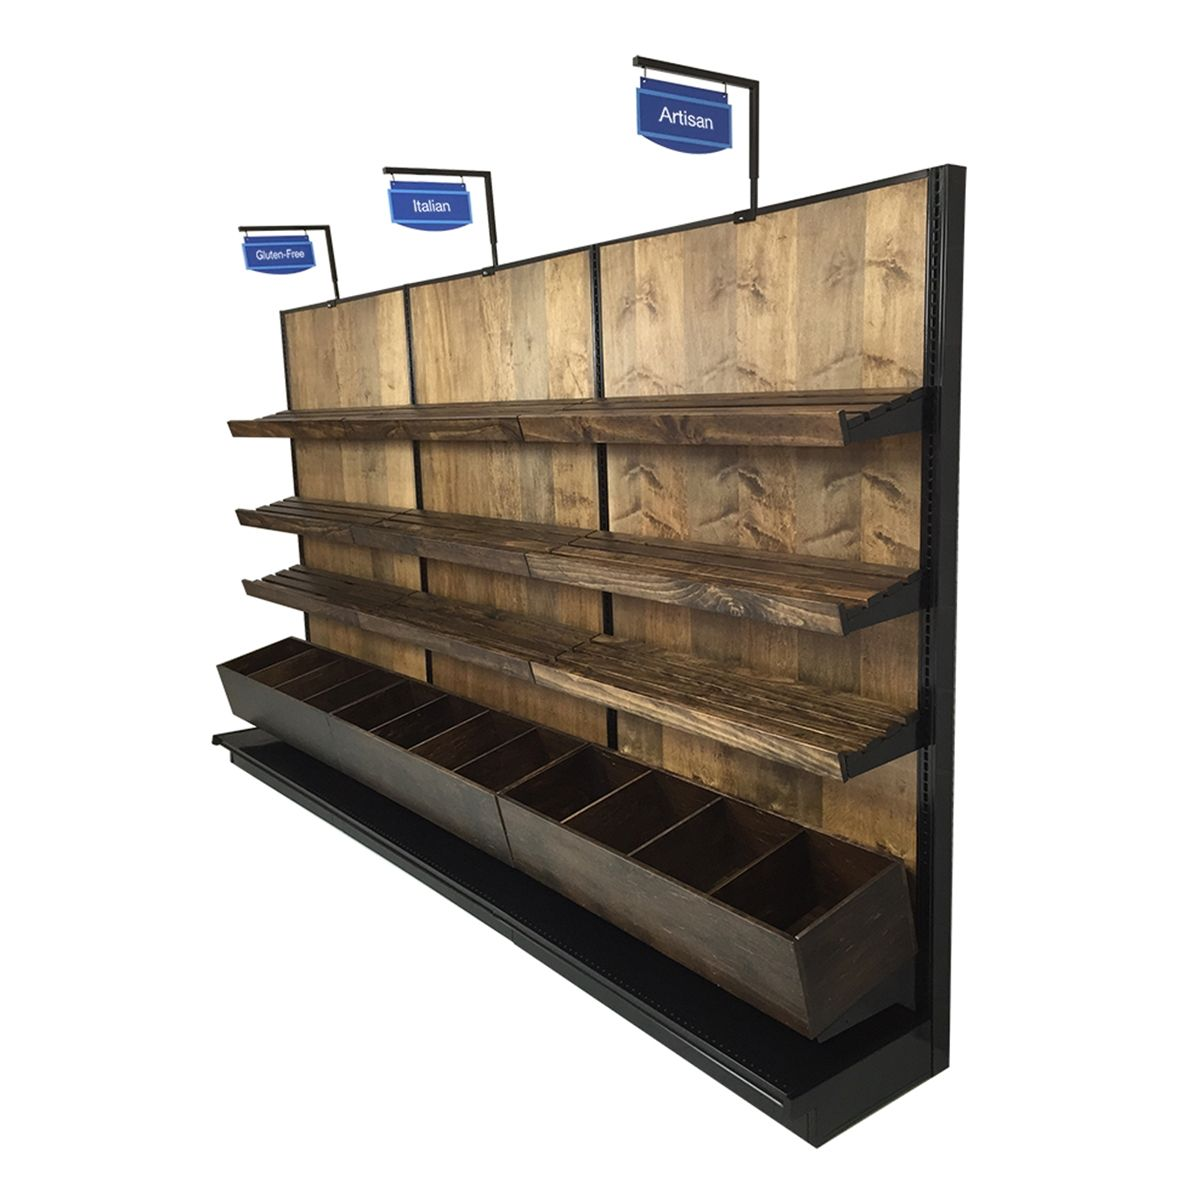 Retail Display Stands Wood Wicker Display Stands 3 Tier Wooden Display Stand Http Www H Exibidores De Madera Exhibidores De Madera Fruteros De Madera